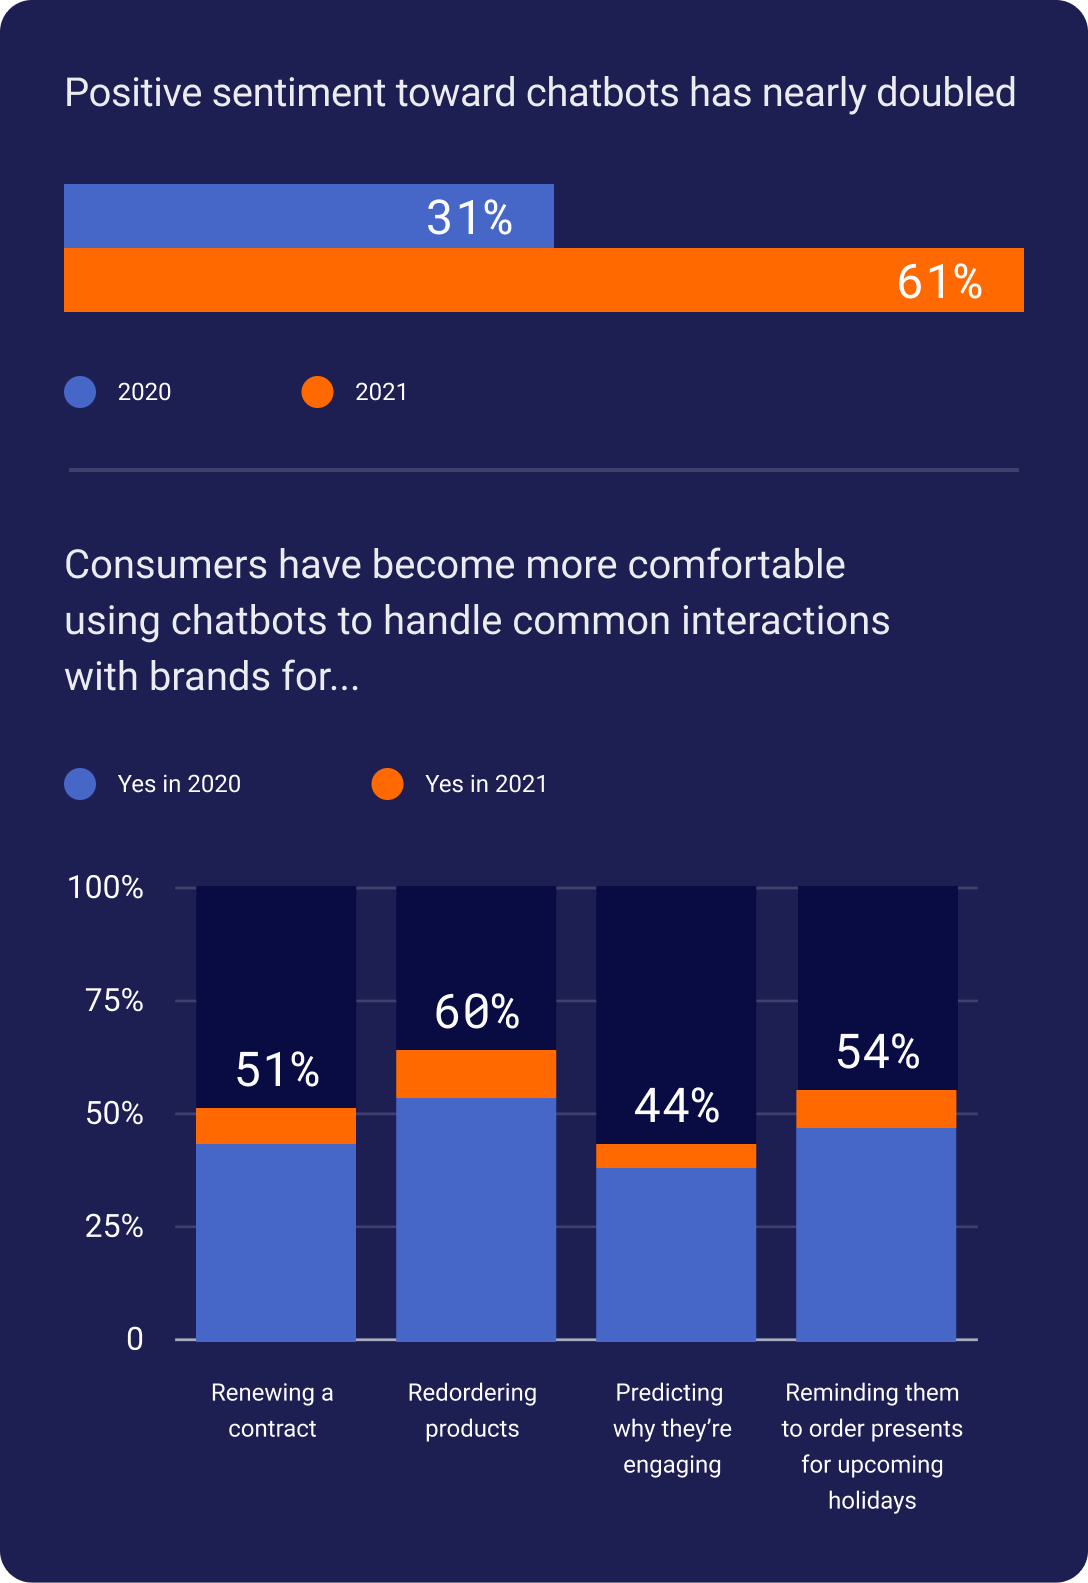 Charts showing the positive sentiment towards chatbots has nearly doubled